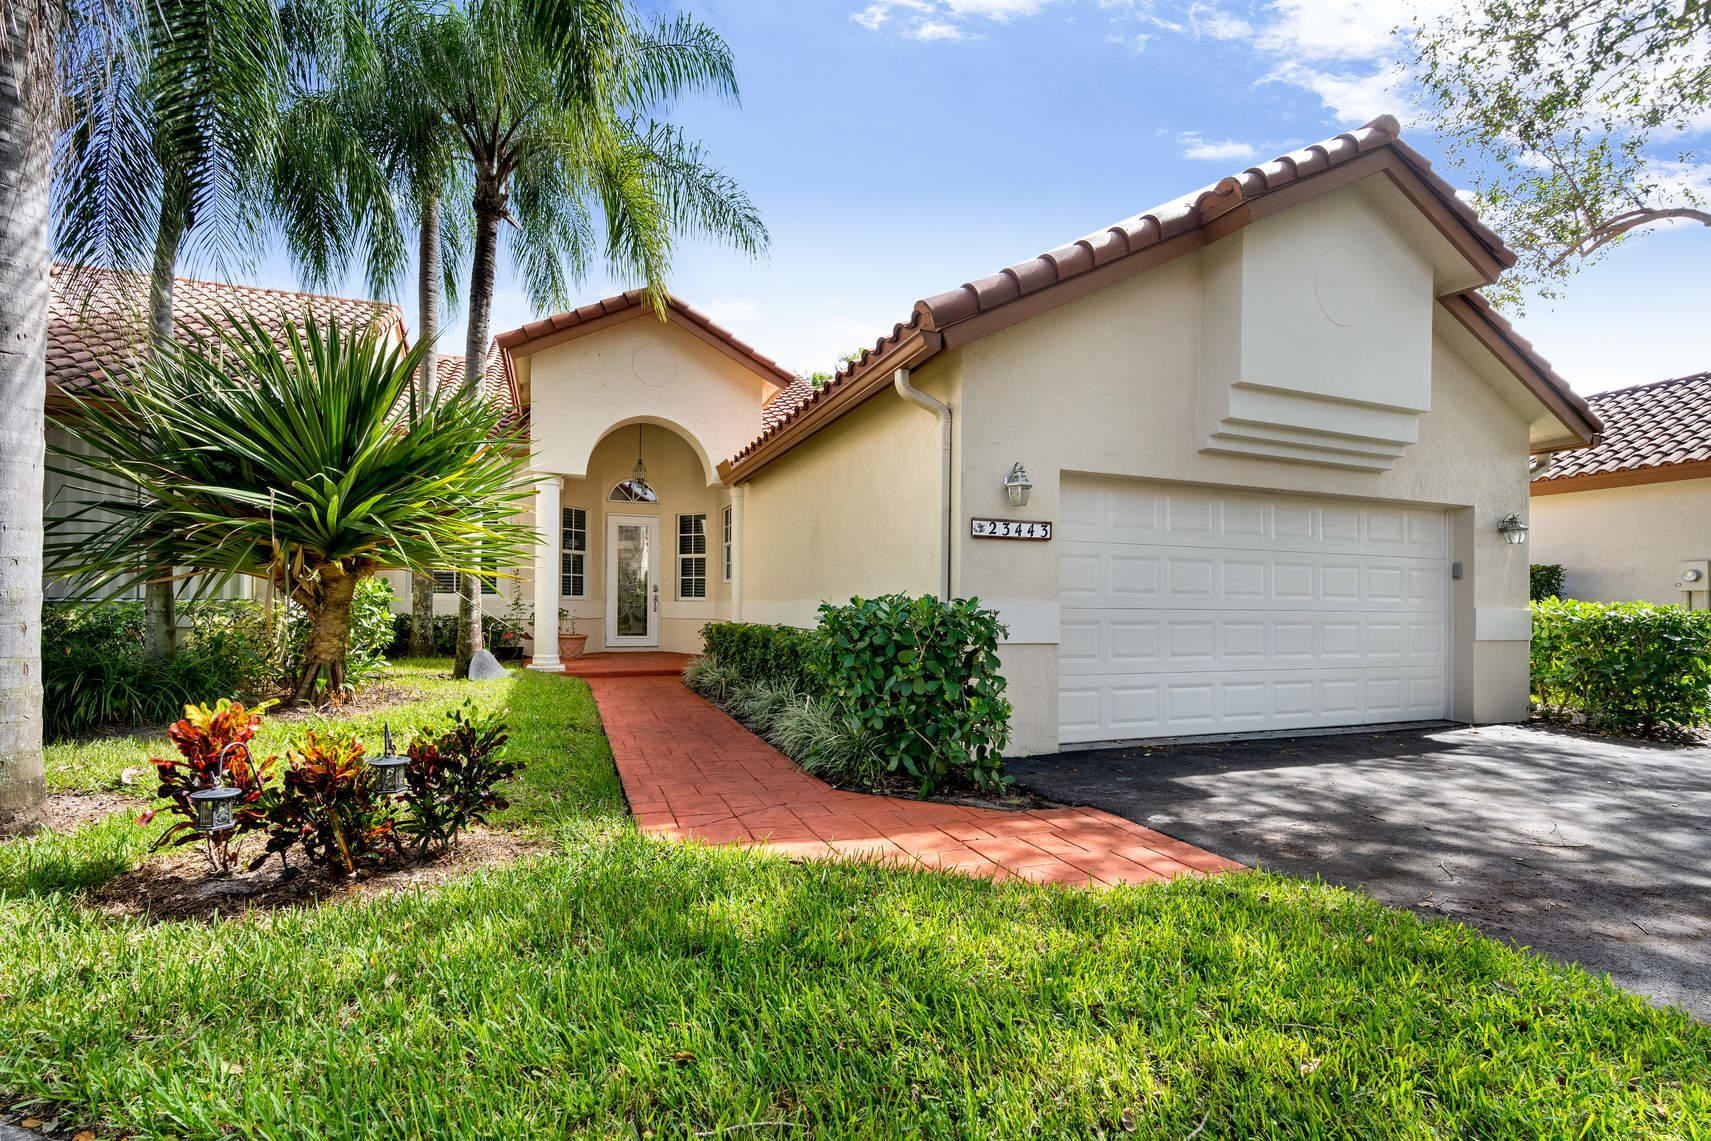 23443 Water Circle, Boca Raton, FL 33486 - #: RX-10669620